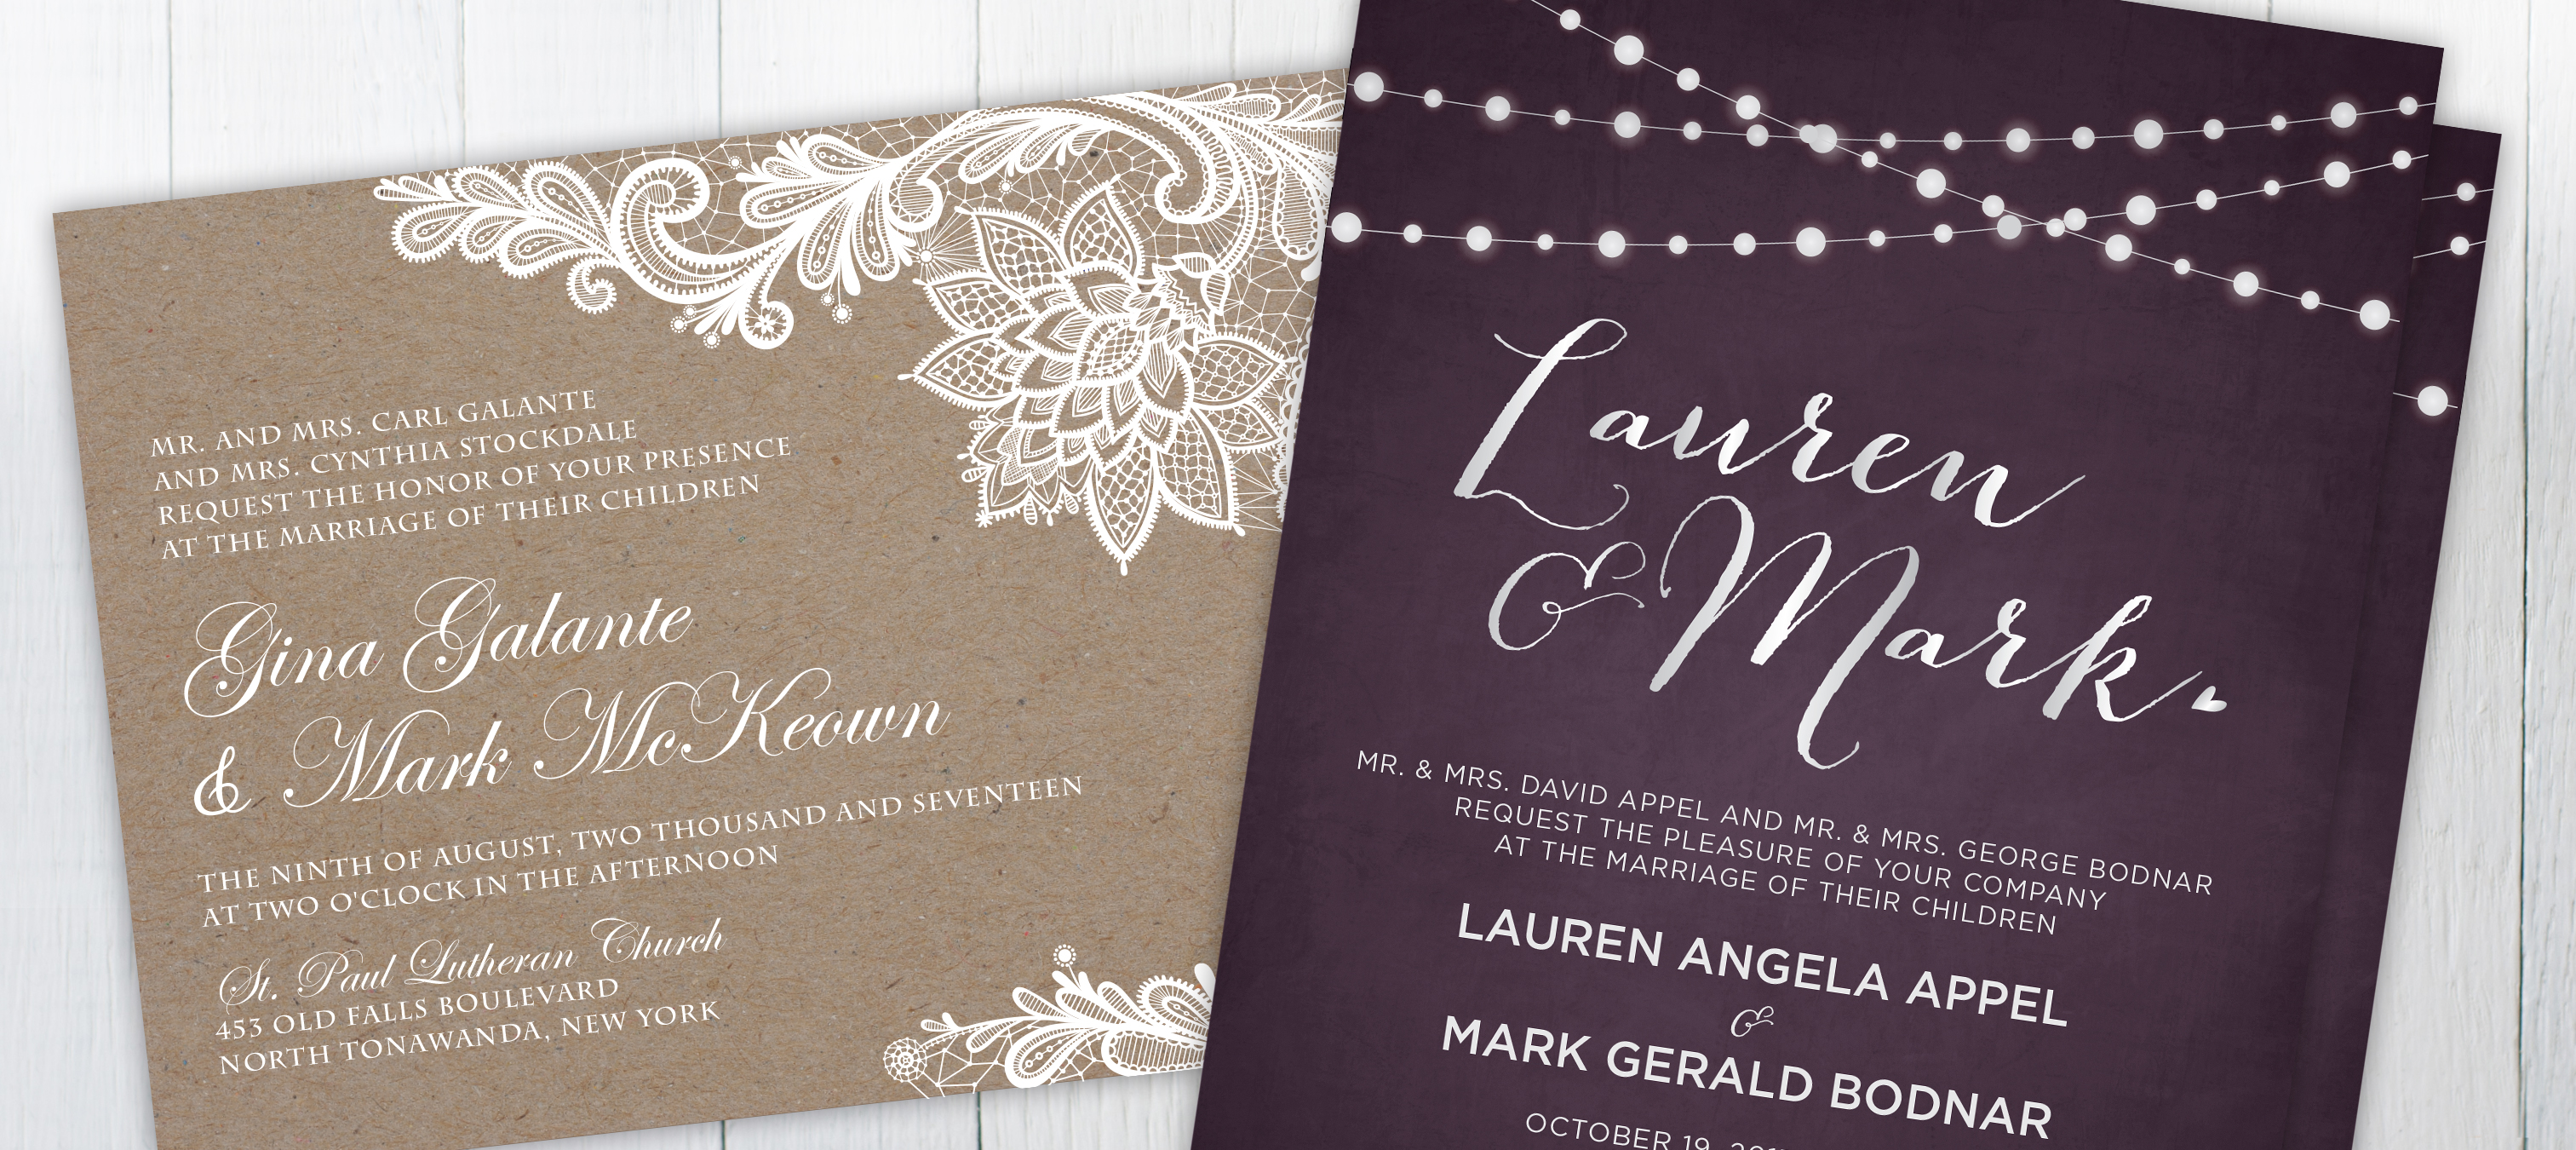 Wording Of Wedding Invitations: Wedding Invitation Wording • Taylor Bradford